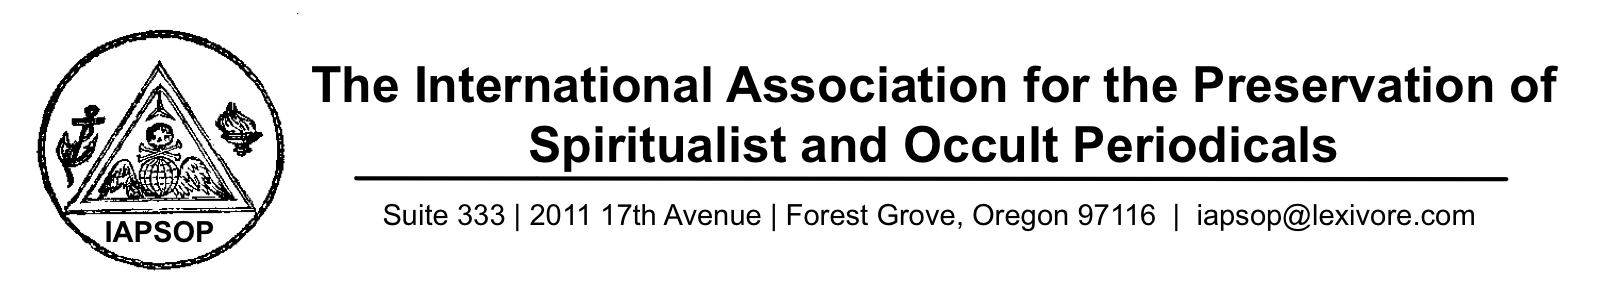 International Association for the Preservation of Spiritualist and Occult Periodicals